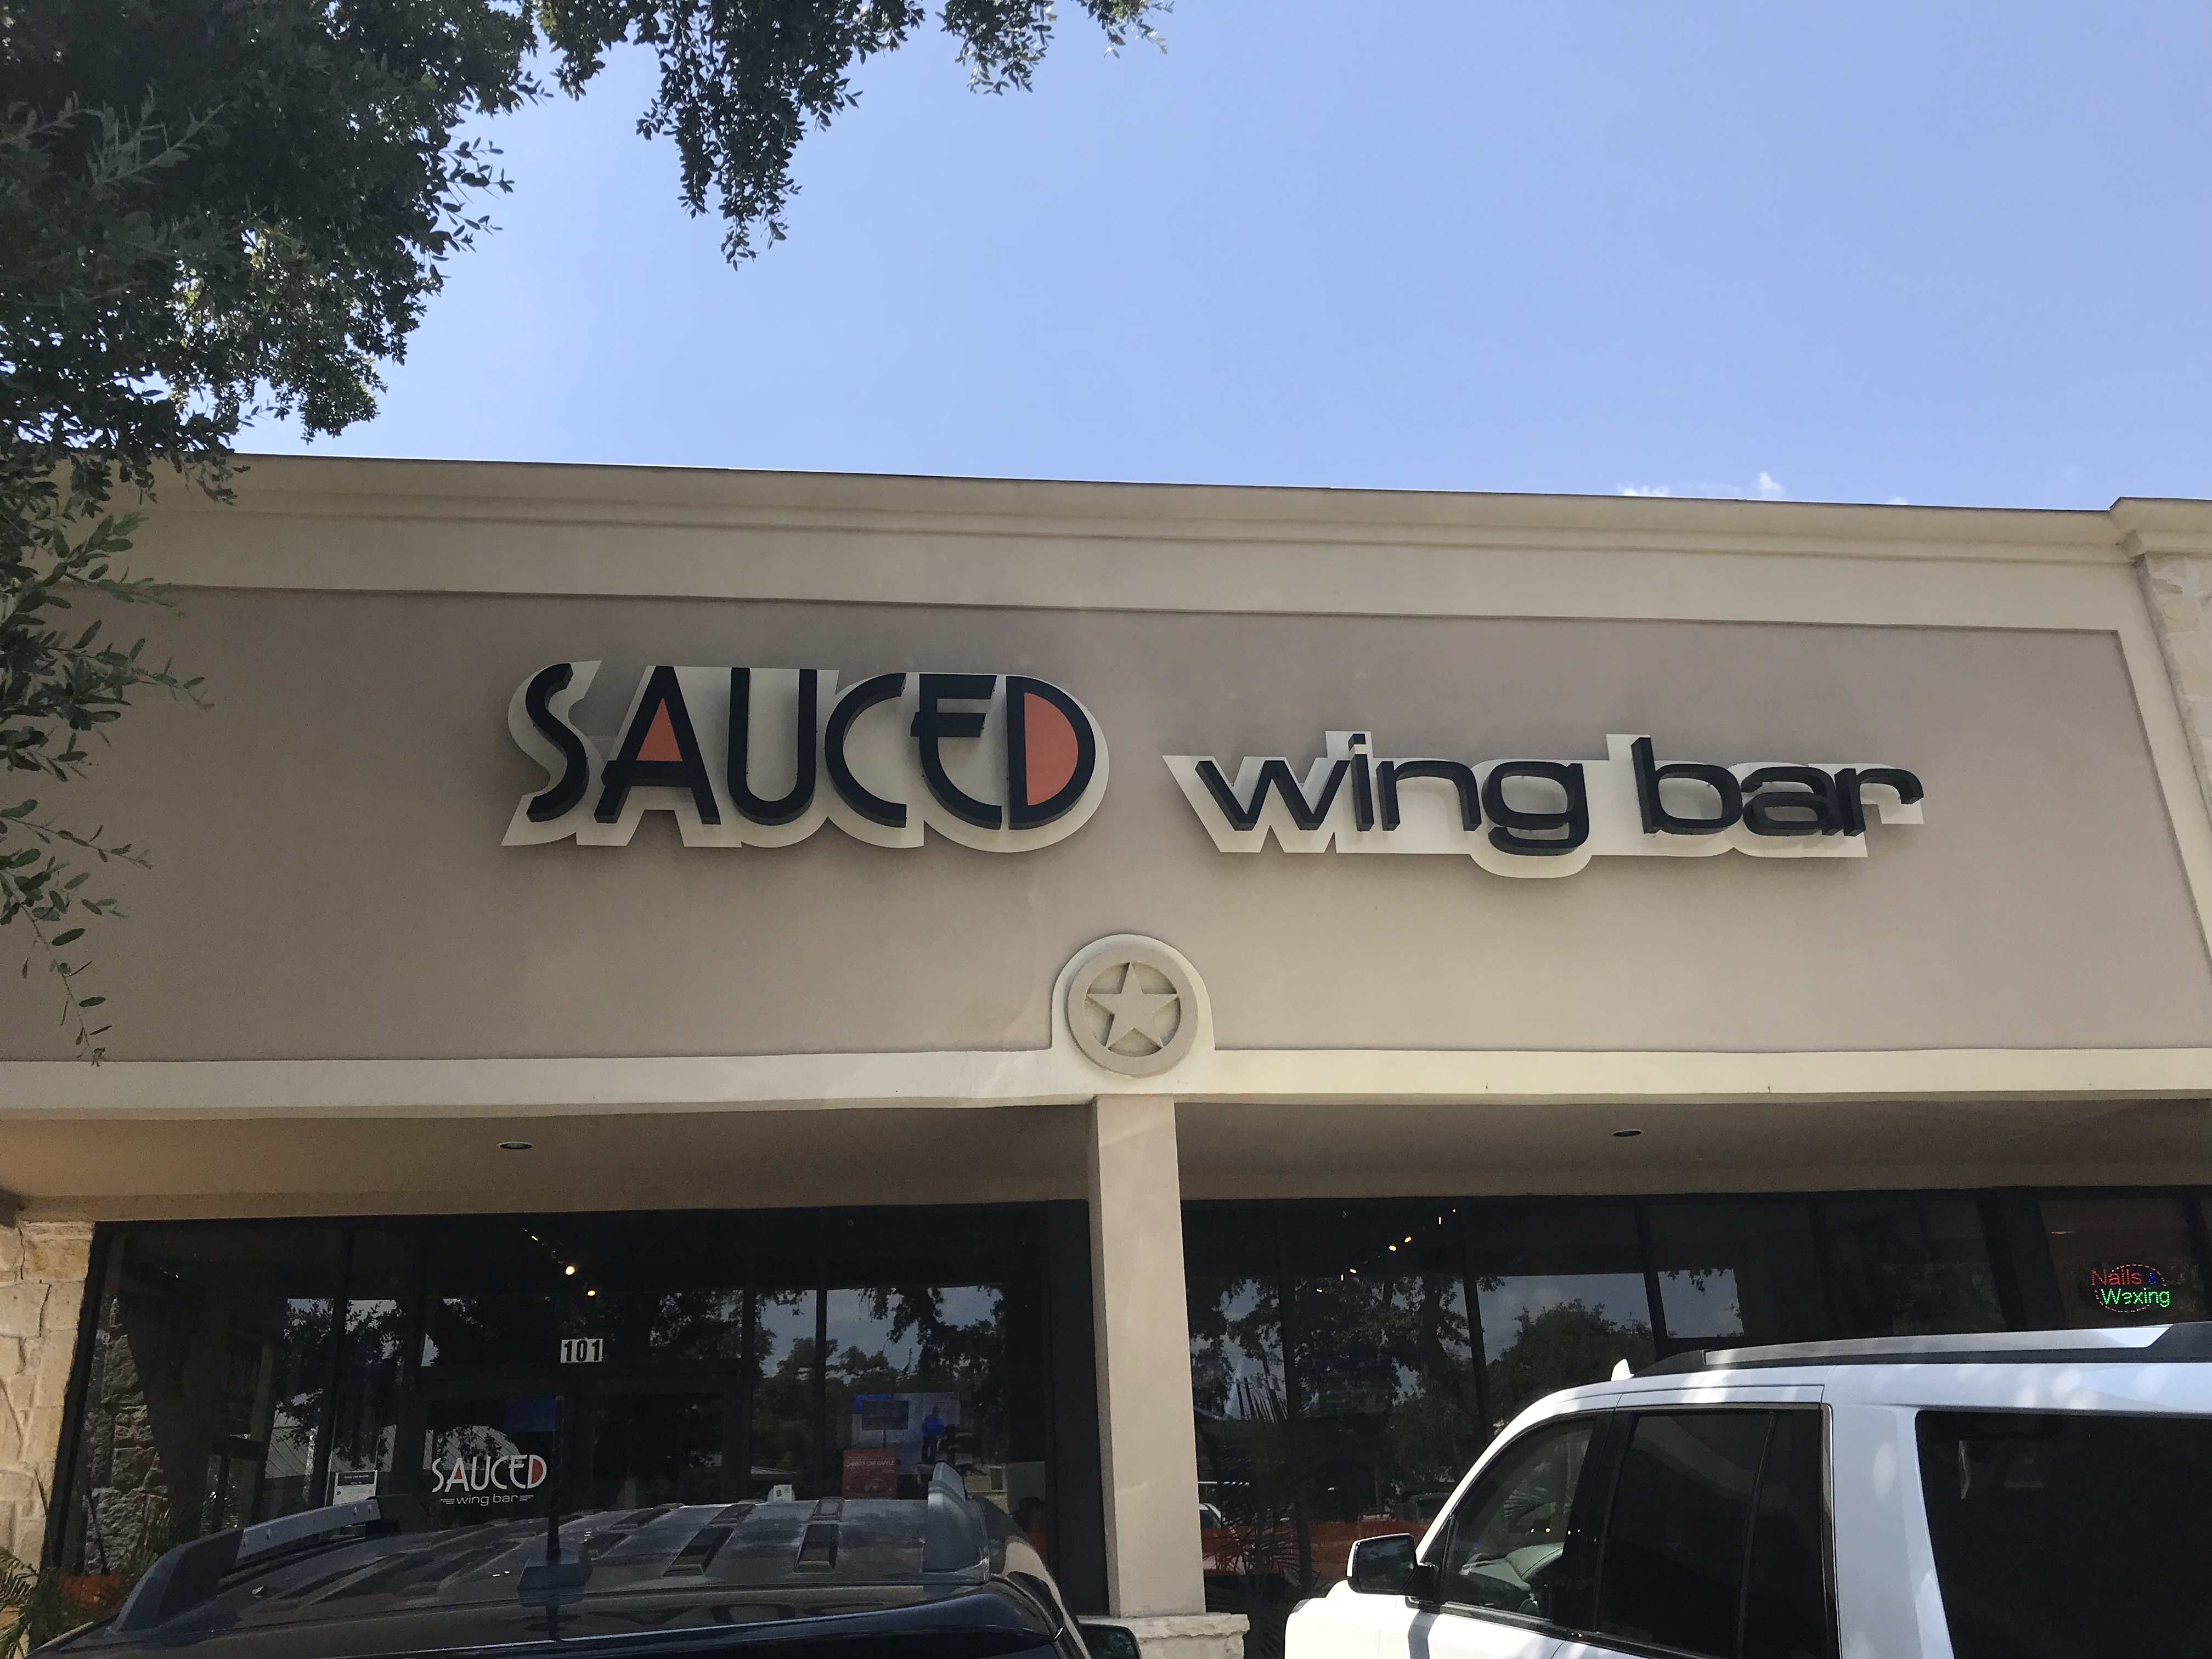 Sauced Wing Bar Boerne TX